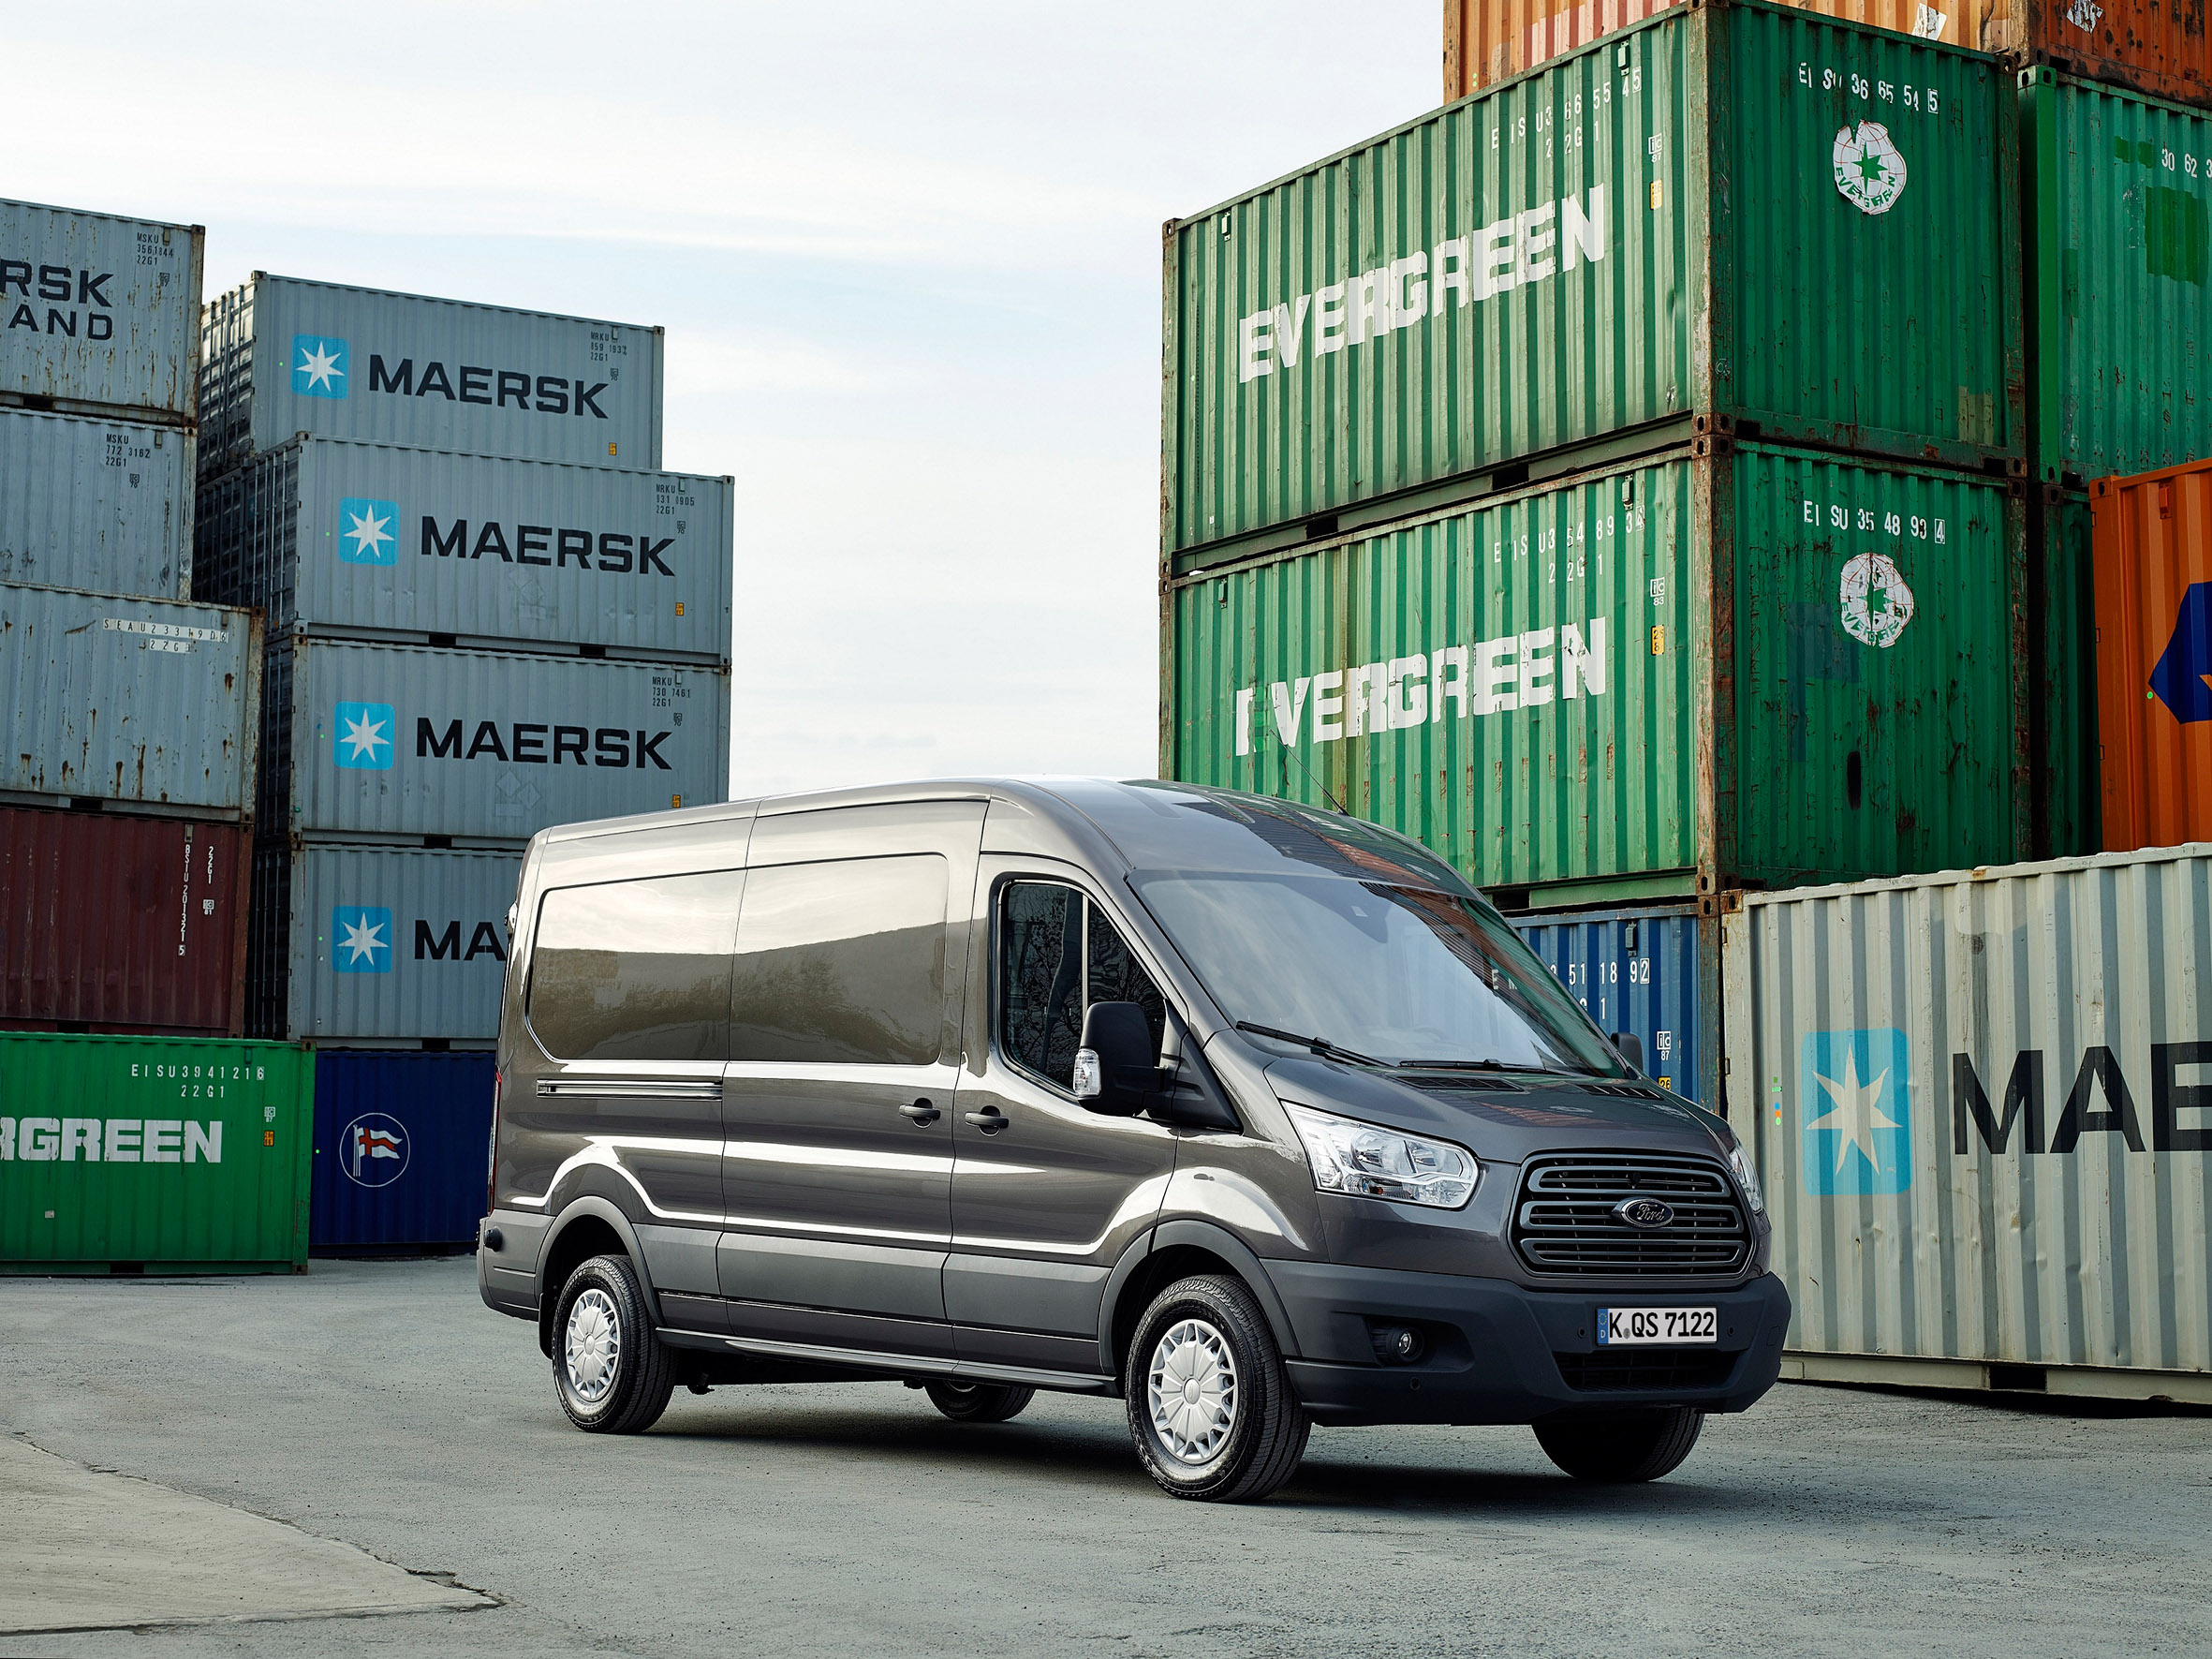 der neue ford transit so ger umig und g nstig wie nie zuvor transporterlegende presseportal. Black Bedroom Furniture Sets. Home Design Ideas